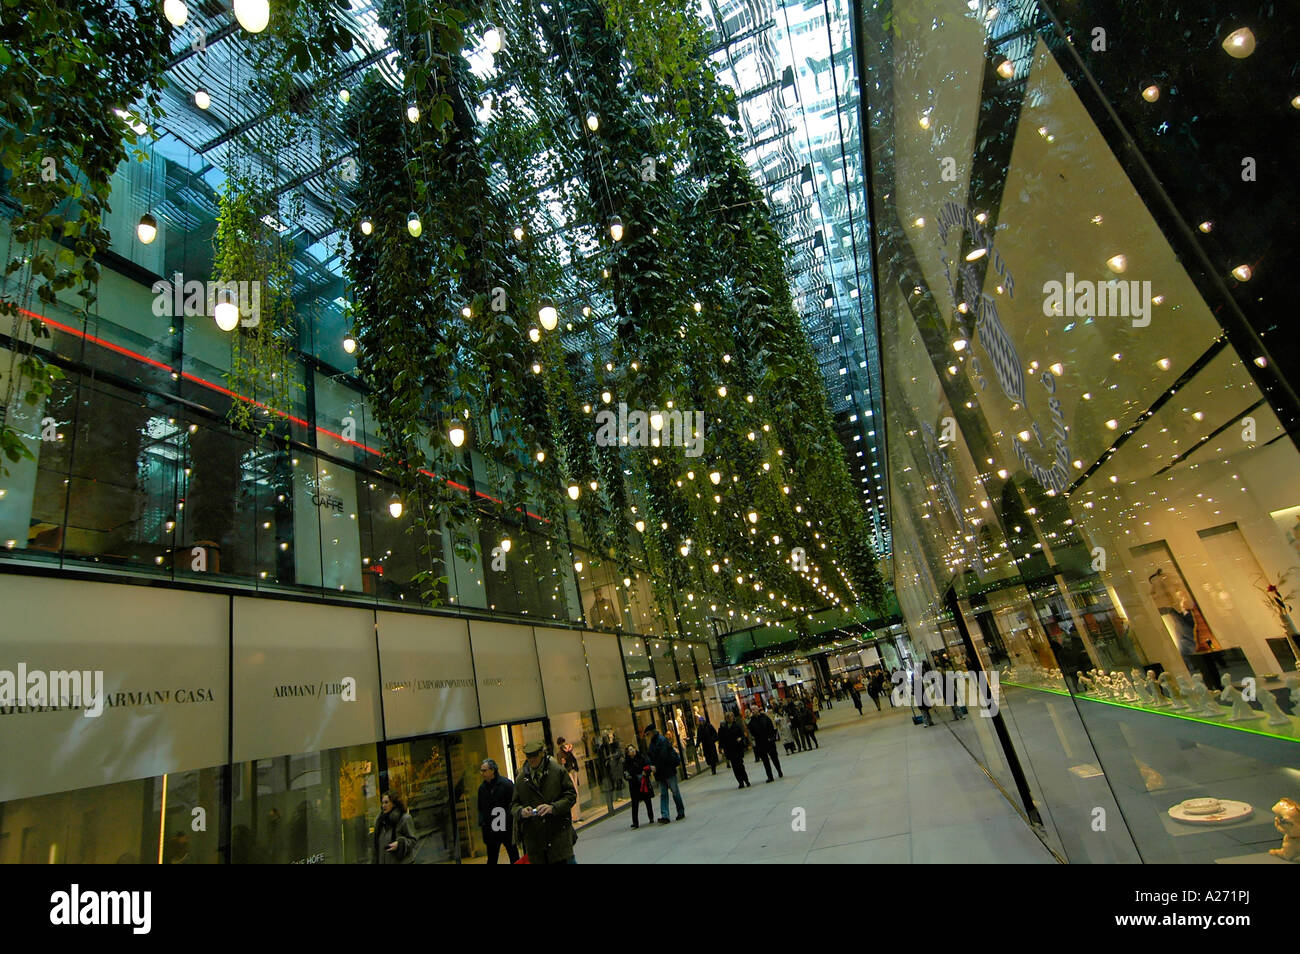 Mall Munchen Funf Hofe Munich Stock Photos And Funf Hofe Munich Stock